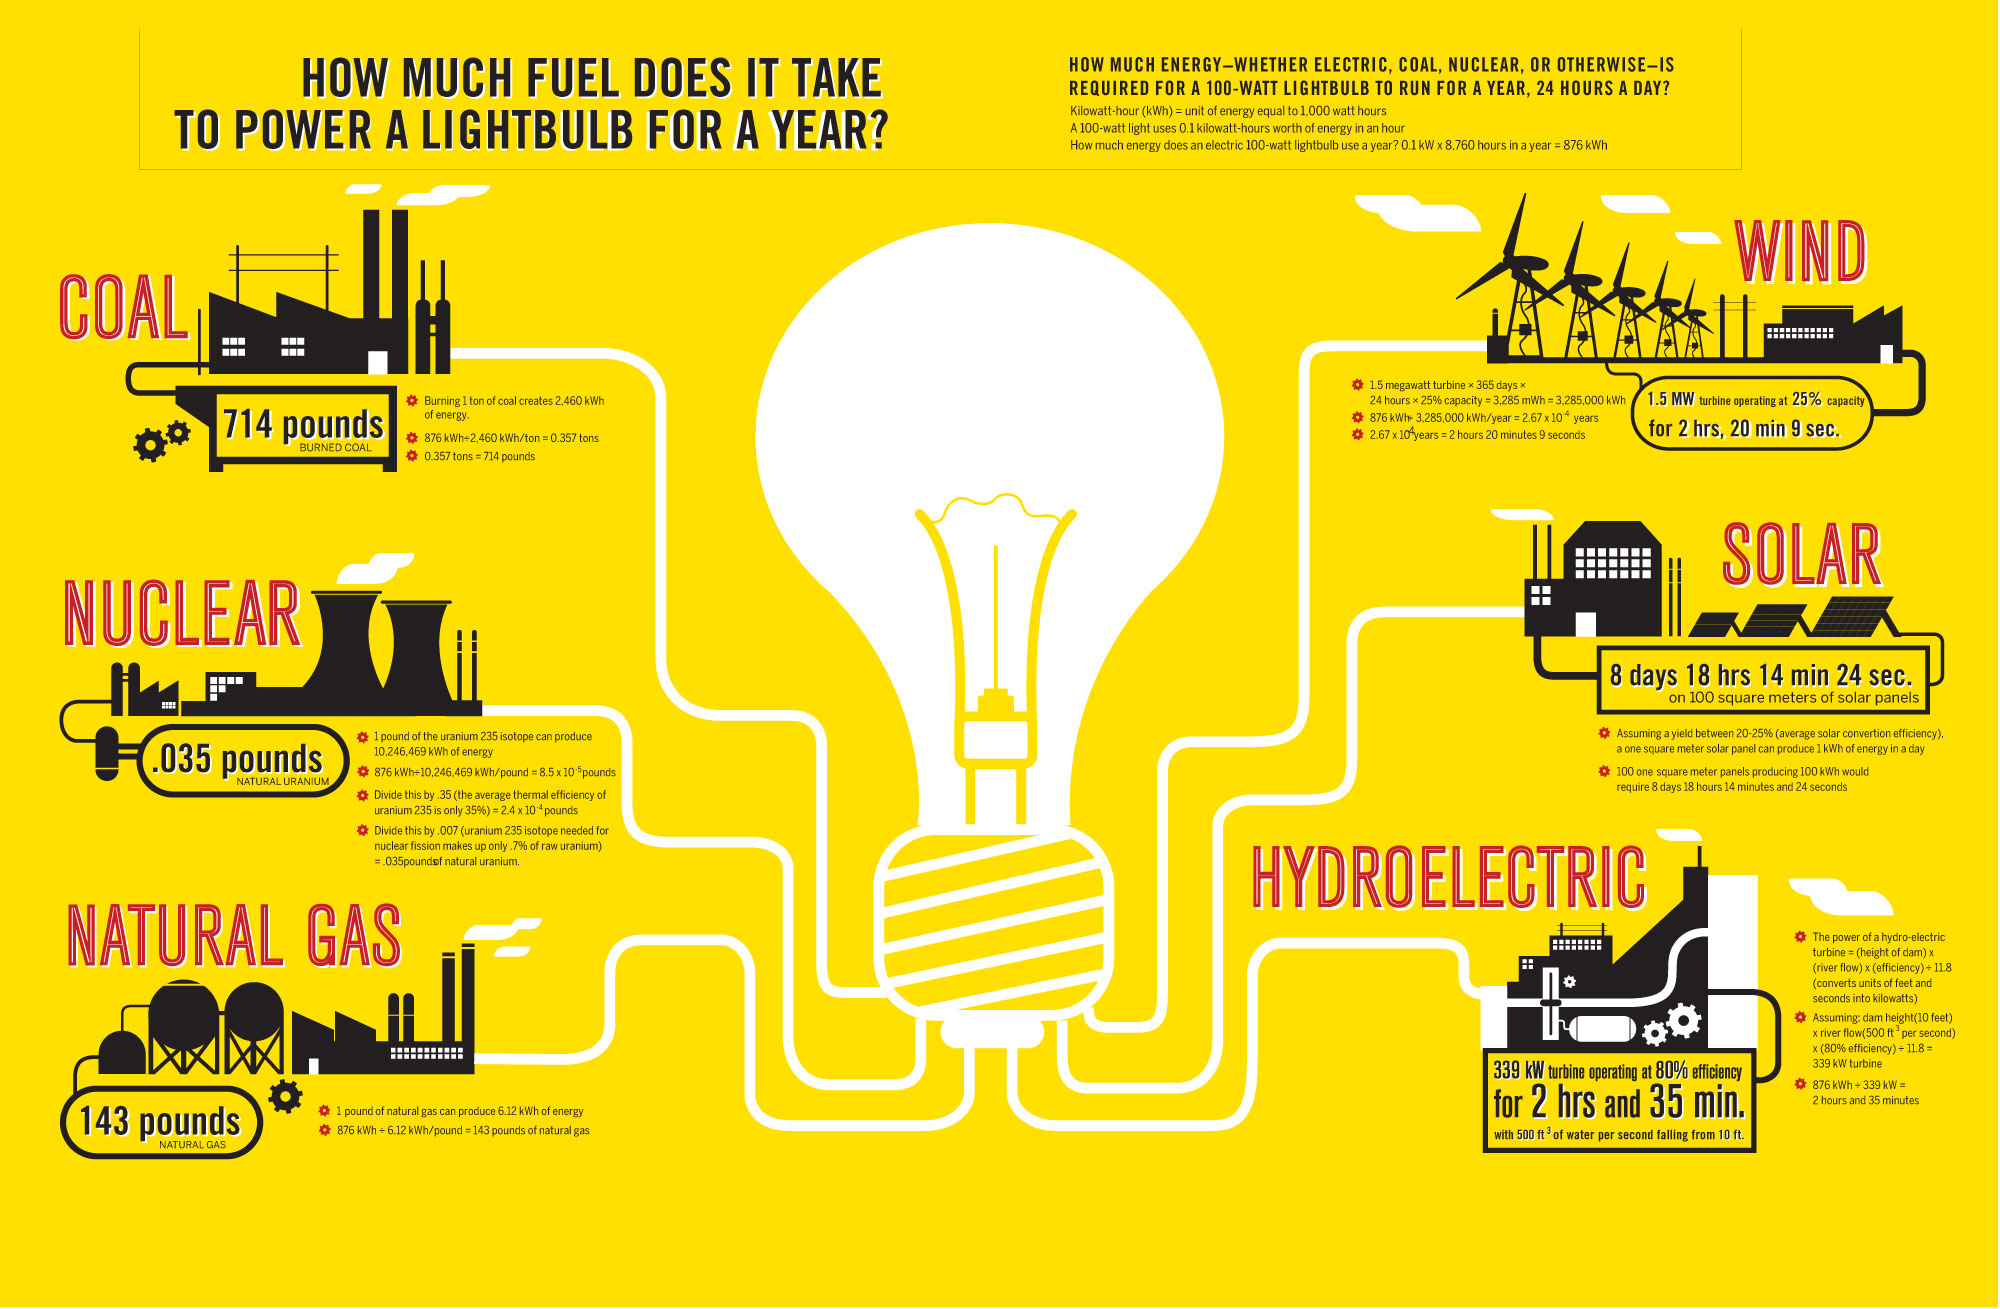 like info-graphics. Here is one from Good magazine about energy: